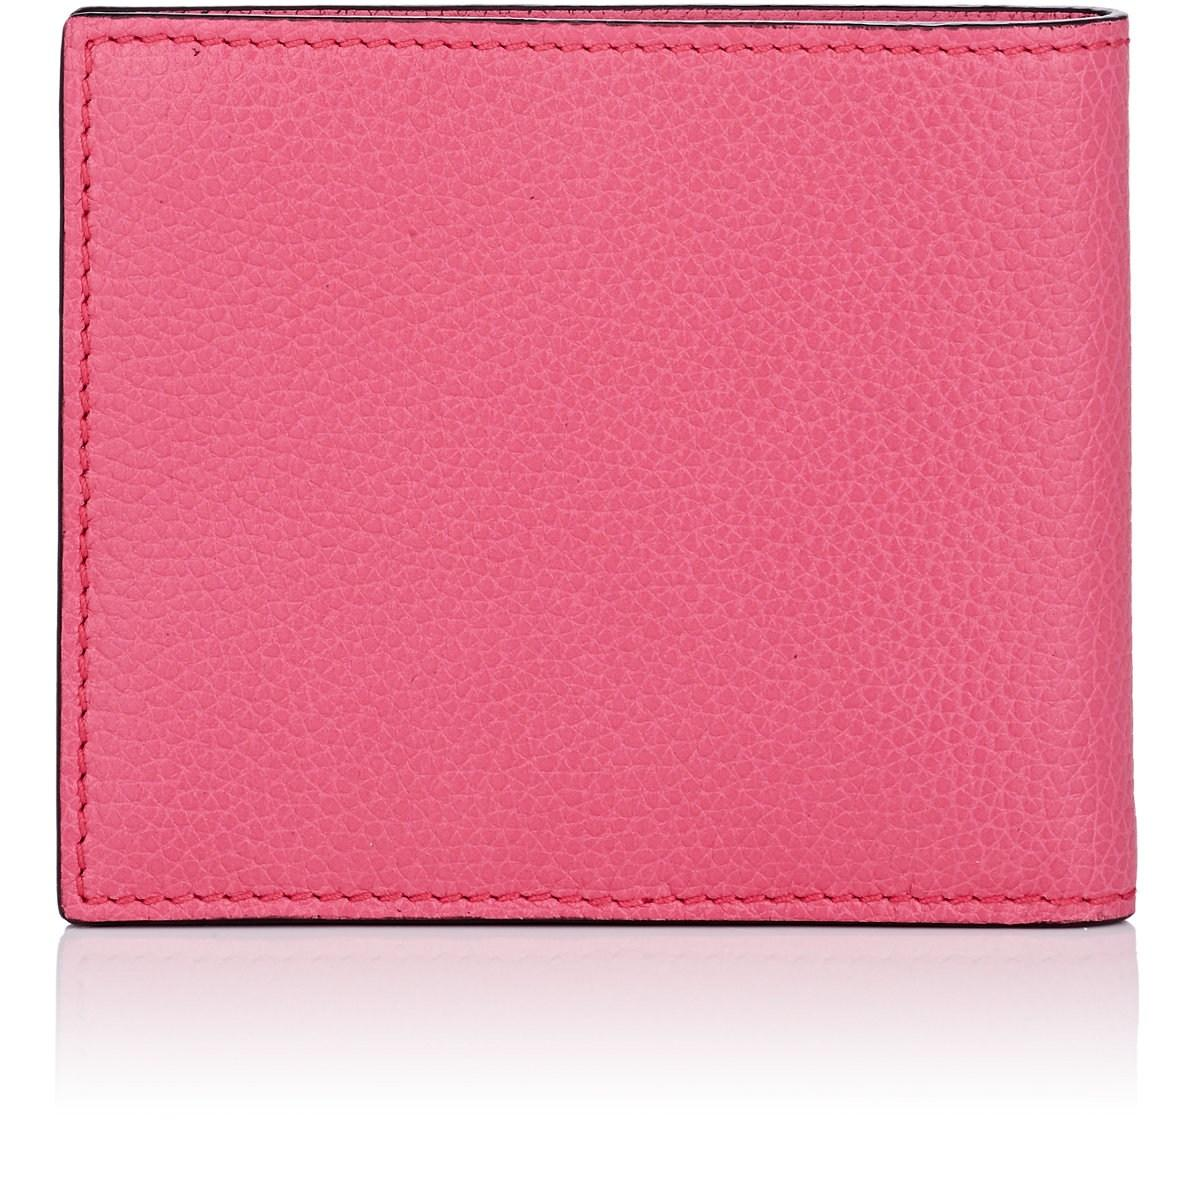 Gucci Logo Leather Billfold In Pink Amp Purple Pink For